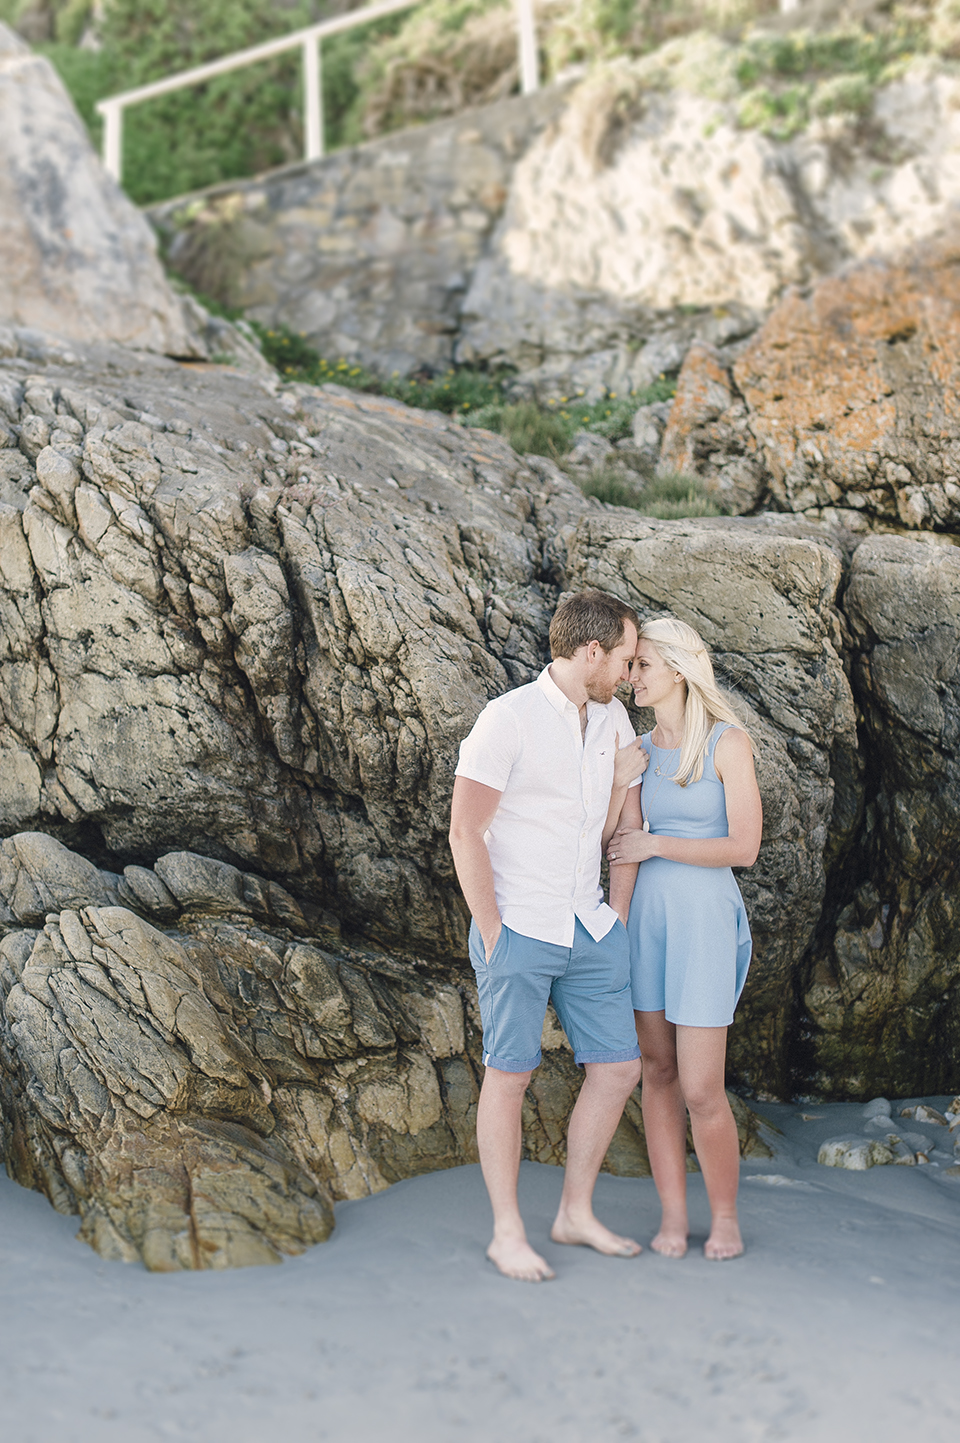 RyanParker_WeddingPhotographer_FineArt_CapeTown_EngagementSession_Hermanus_M&S_DSC_2501.jpg